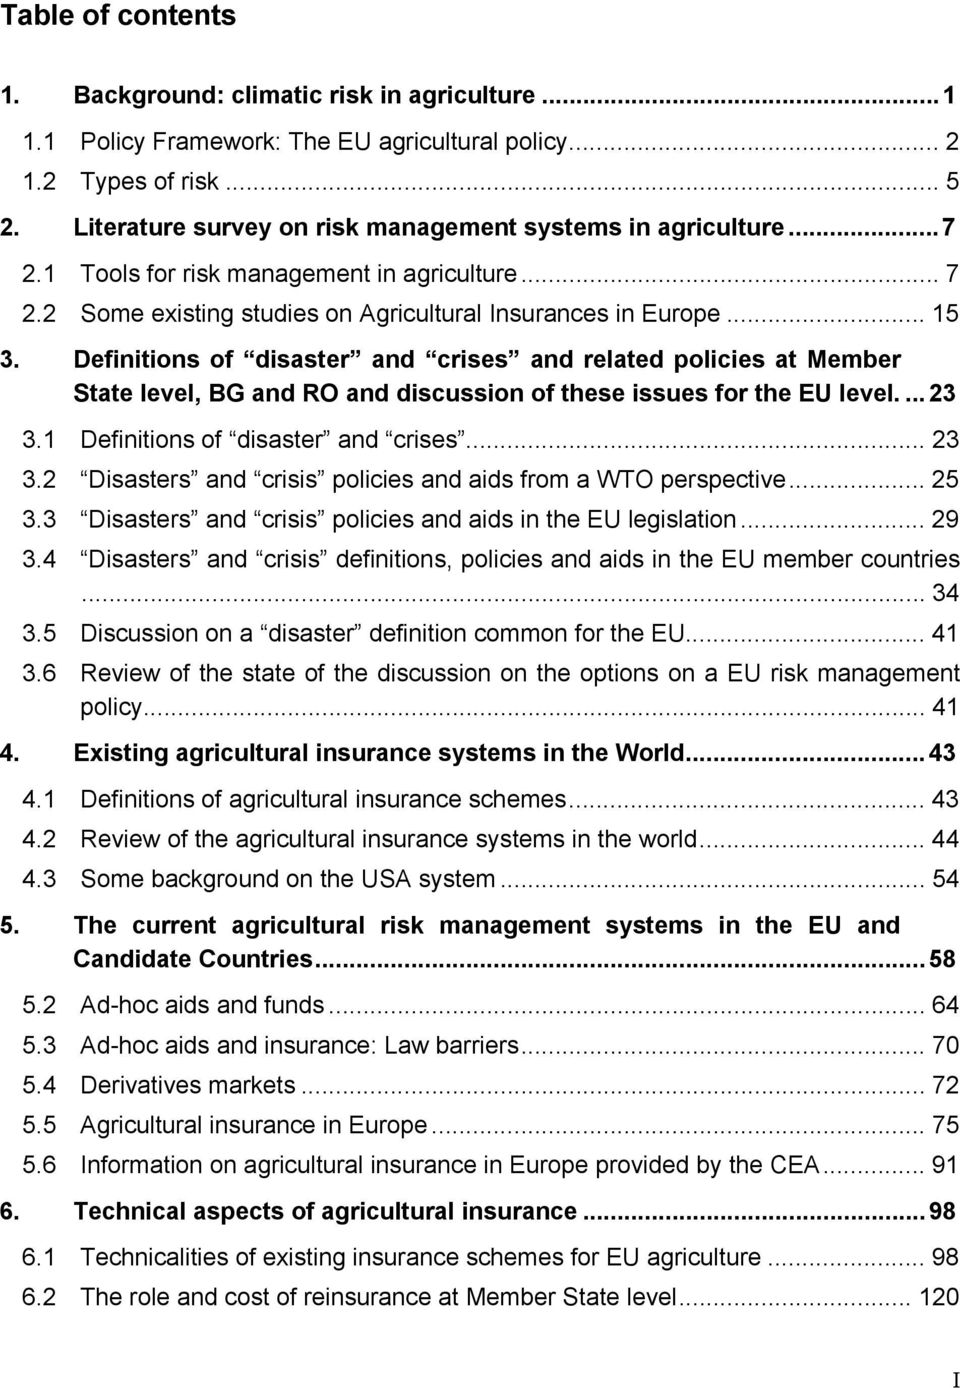 Definitions of disaster and crises and related policies at Member State level, BG and RO and discussion of these issues for the EU level....23 3.1 Definitions of disaster and crises... 23 3.